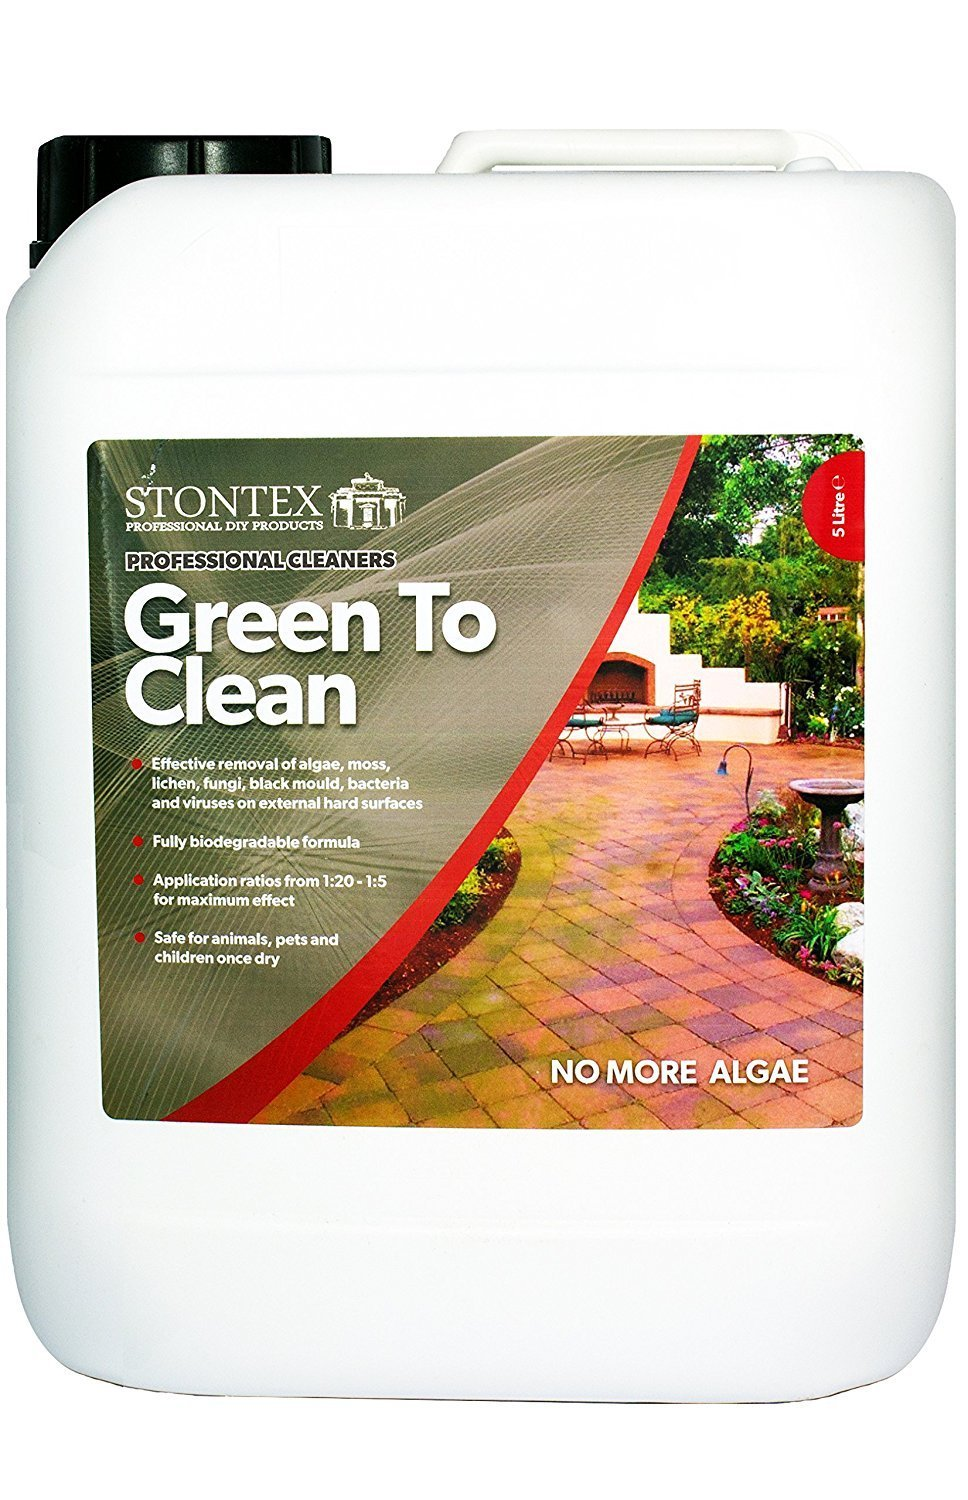 Stontex Green To Clean – Patio/Drive/Garden Furniture Professional Cleaner